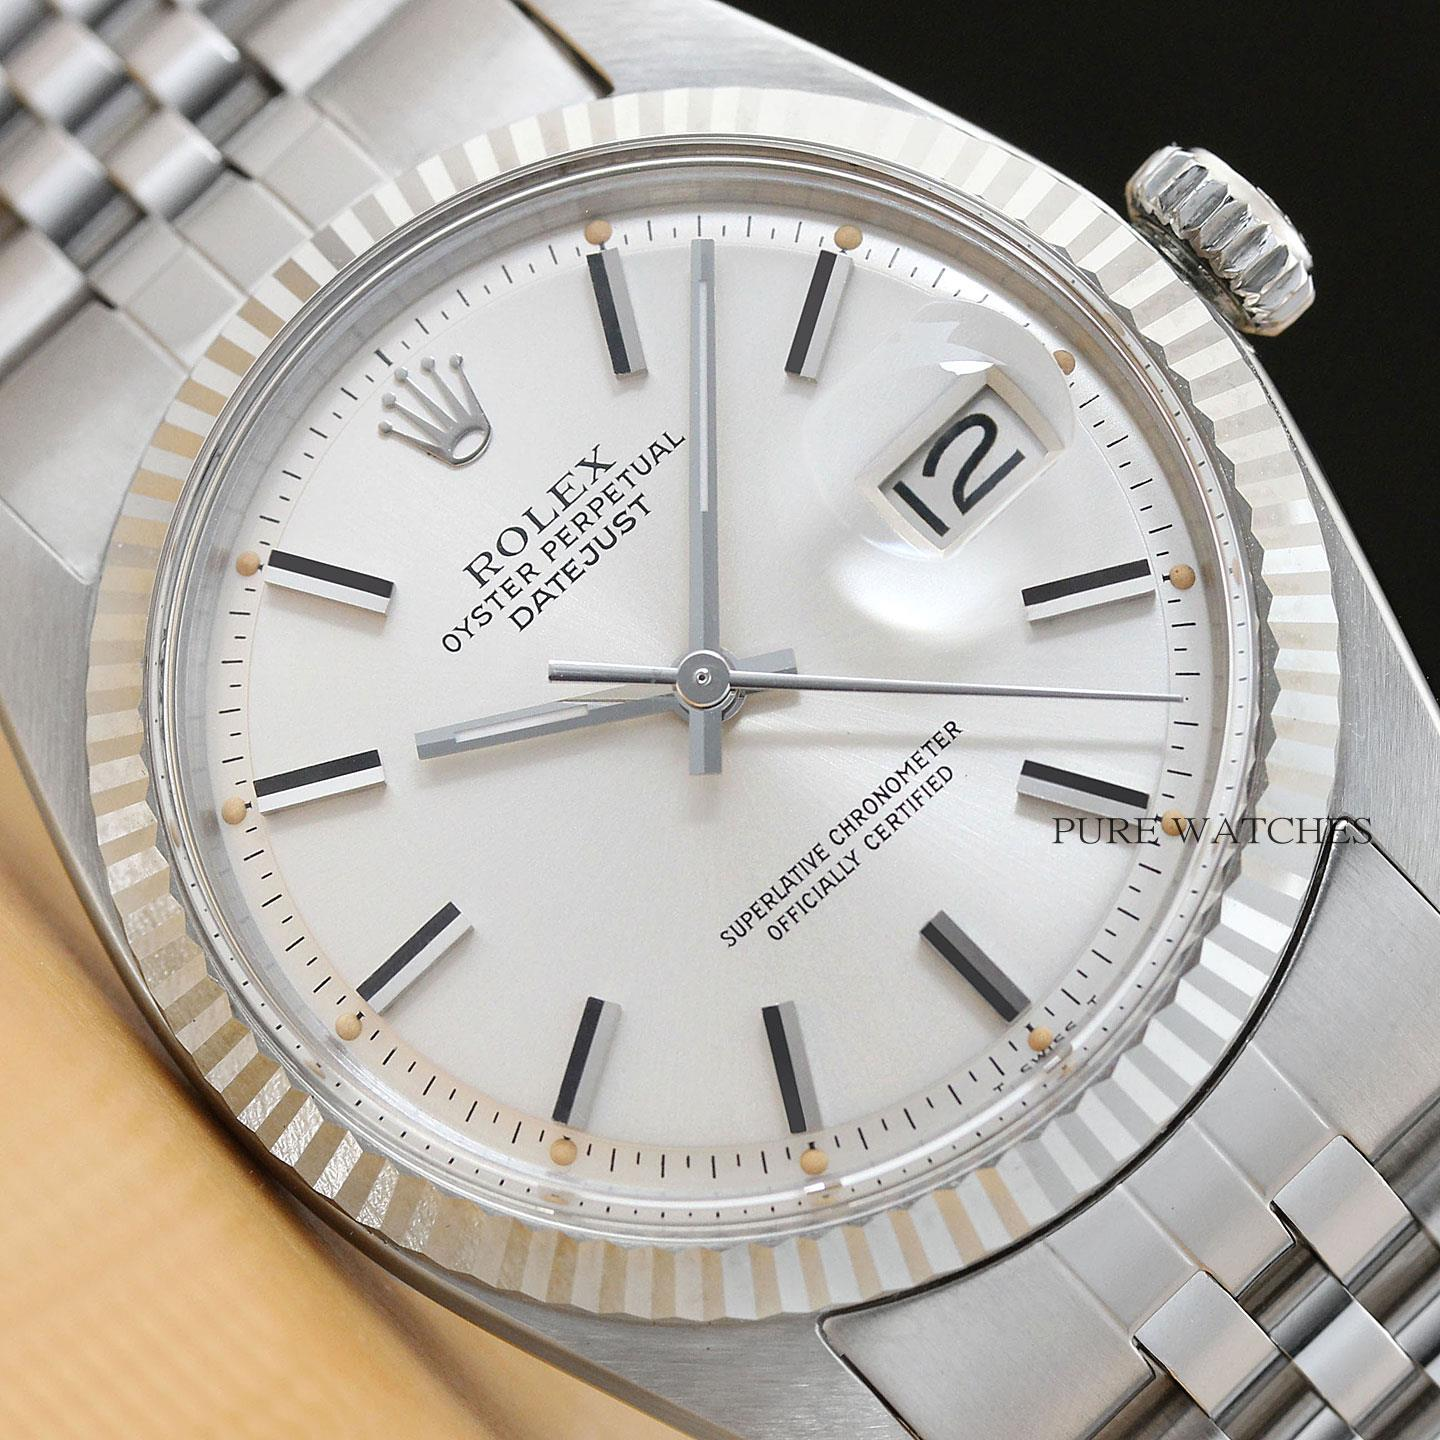 62028359c8741 This is an authentic Rolex watch with a Rolex silver dial, and a Rolex 18k  white gold fluted bezel, and a custom stainless steel jubilee band.